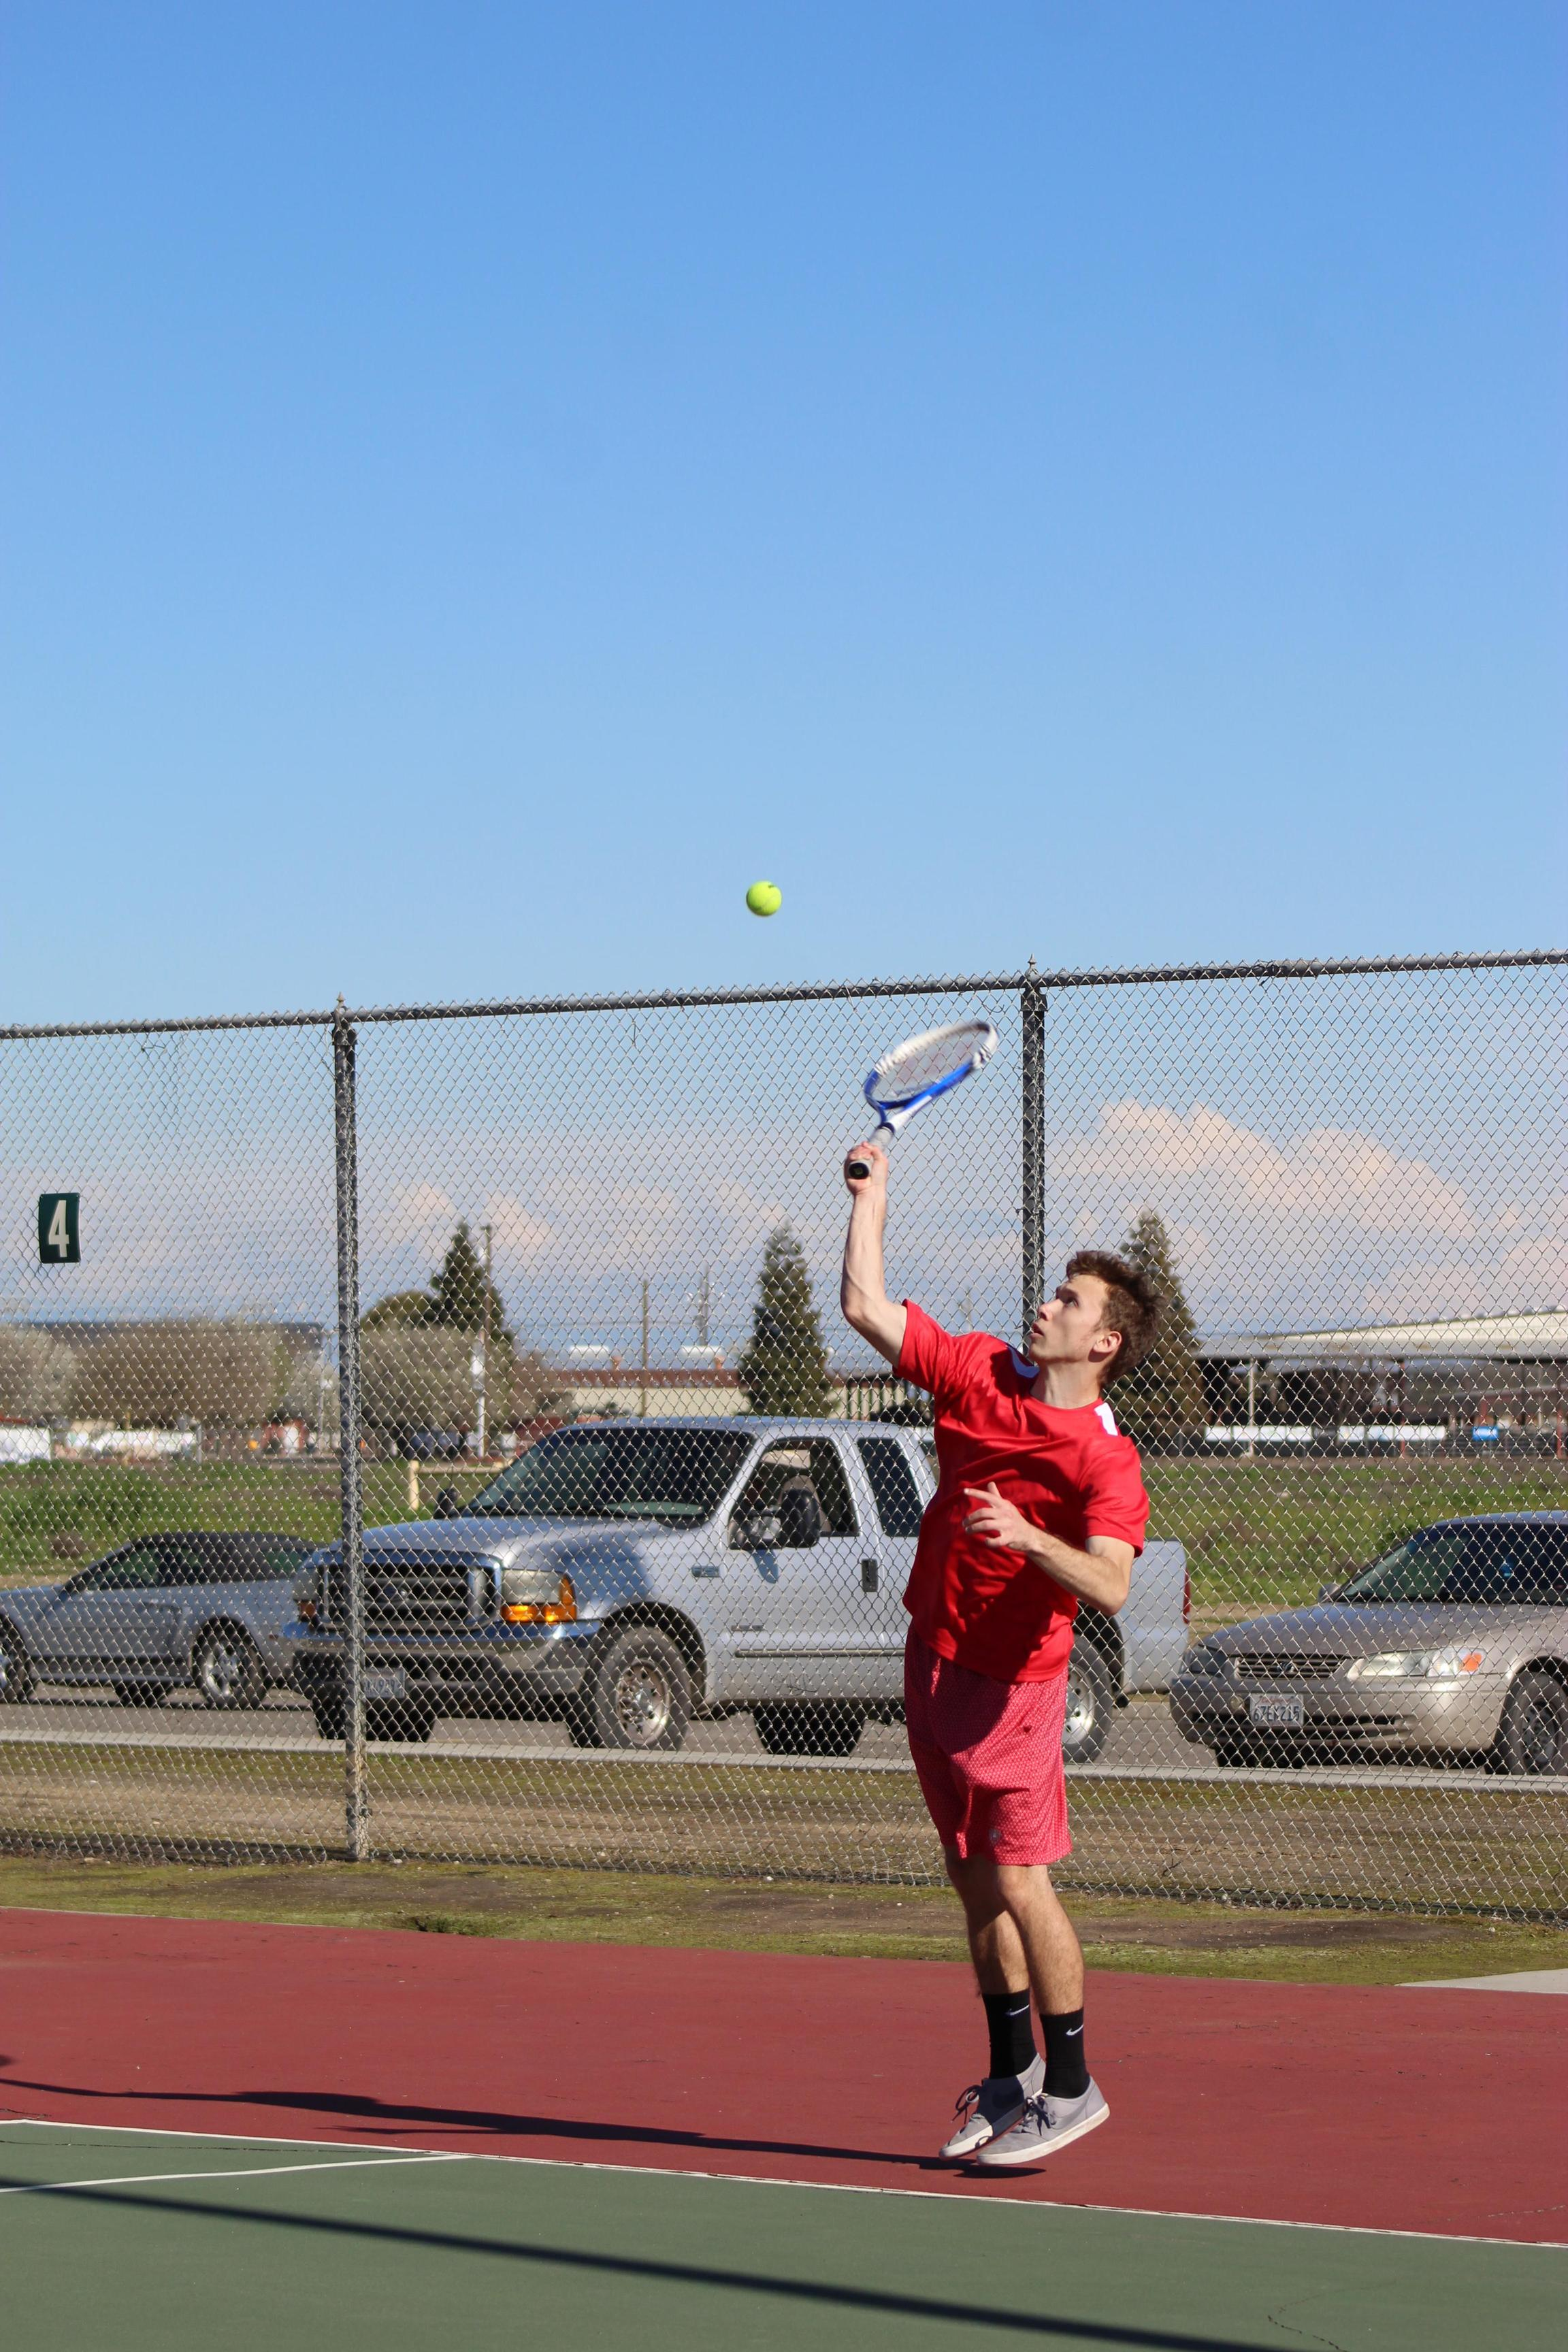 Boys playing tennis against Yosemite